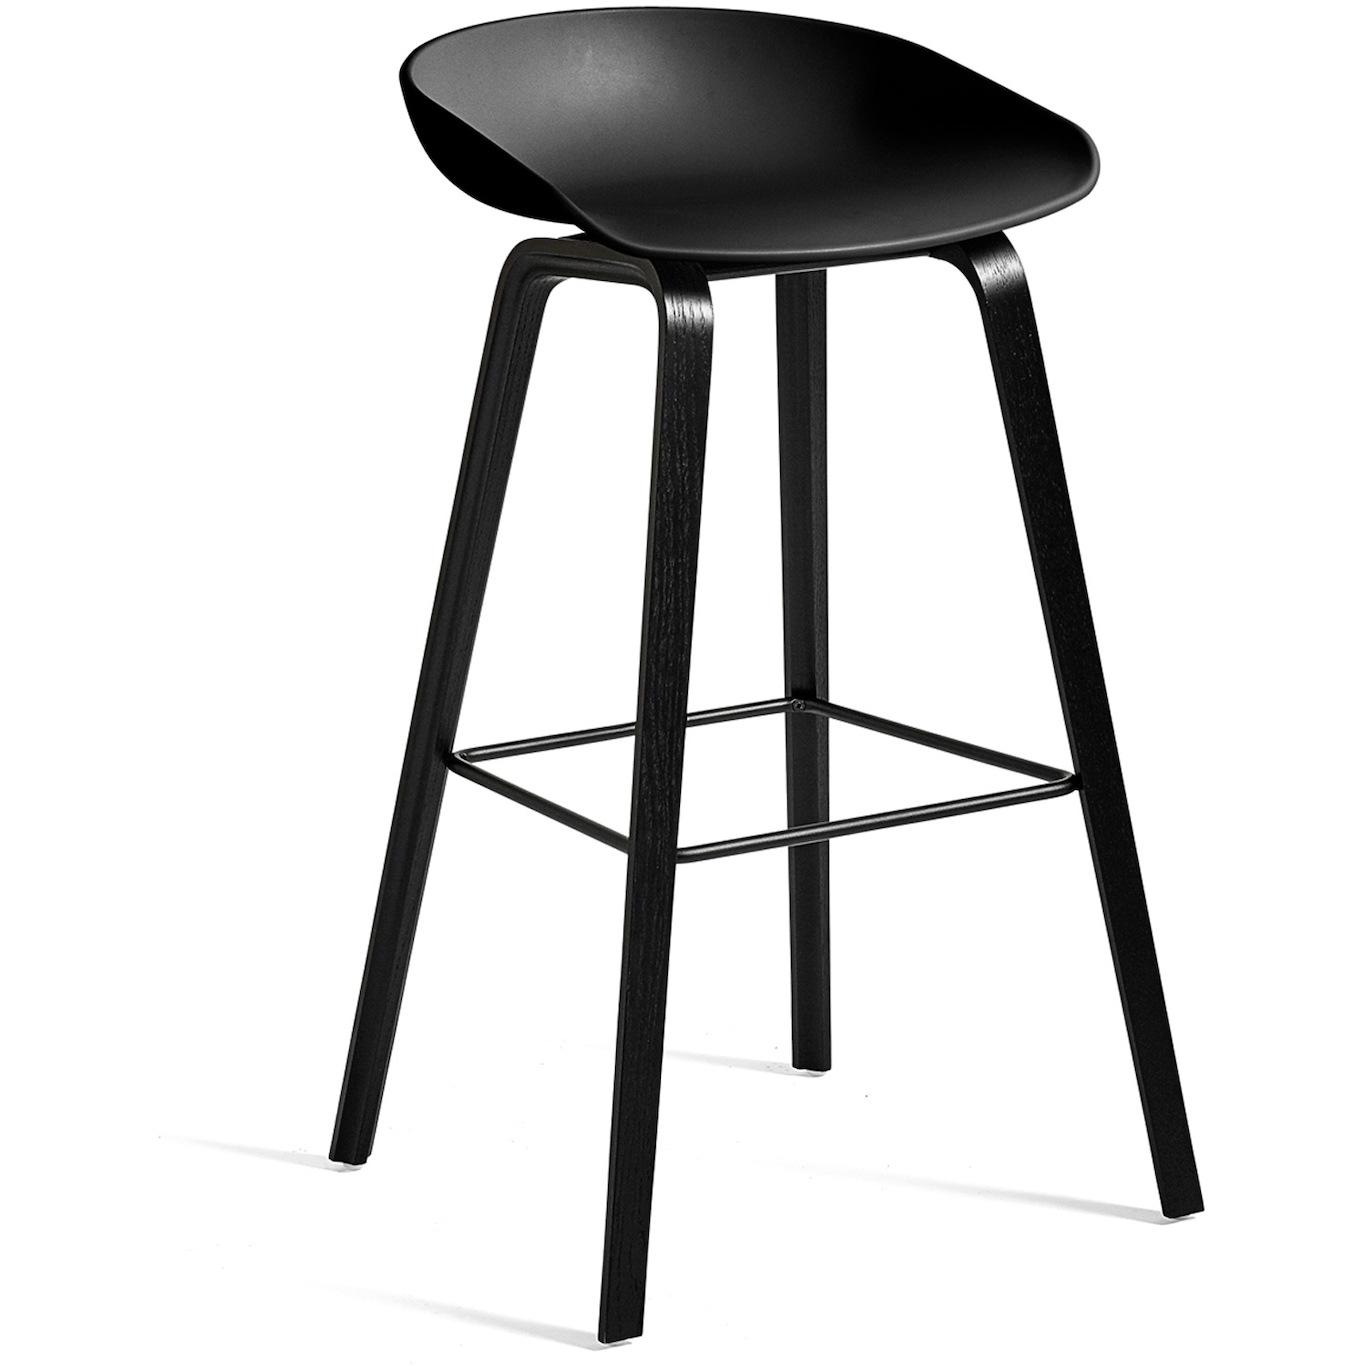 About A Stool 32 Barstol Høy, Sort Hay @ Rum21.no